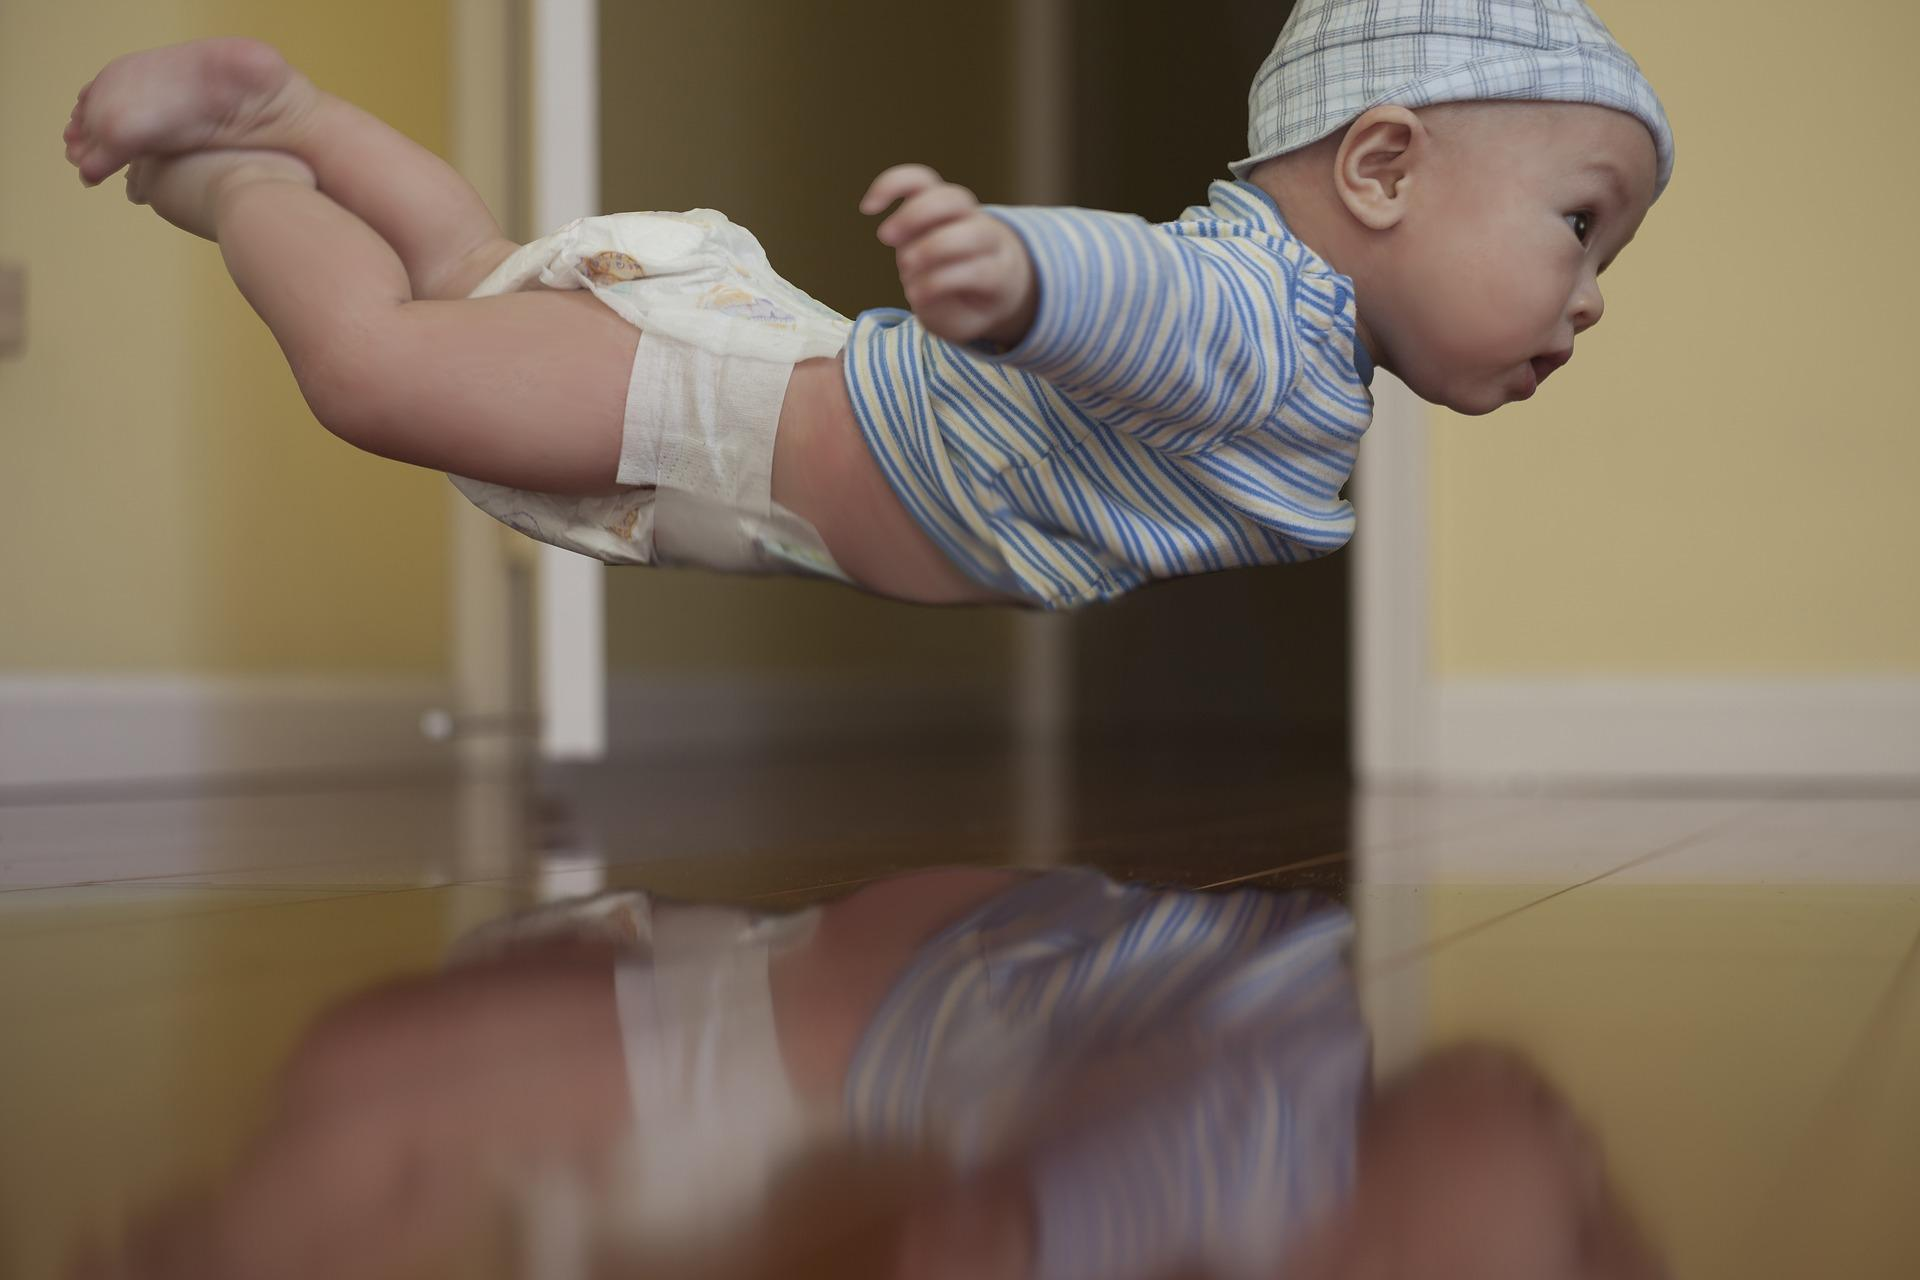 A baby dressed in a shirt, diapers, and cap, floats mid-air.